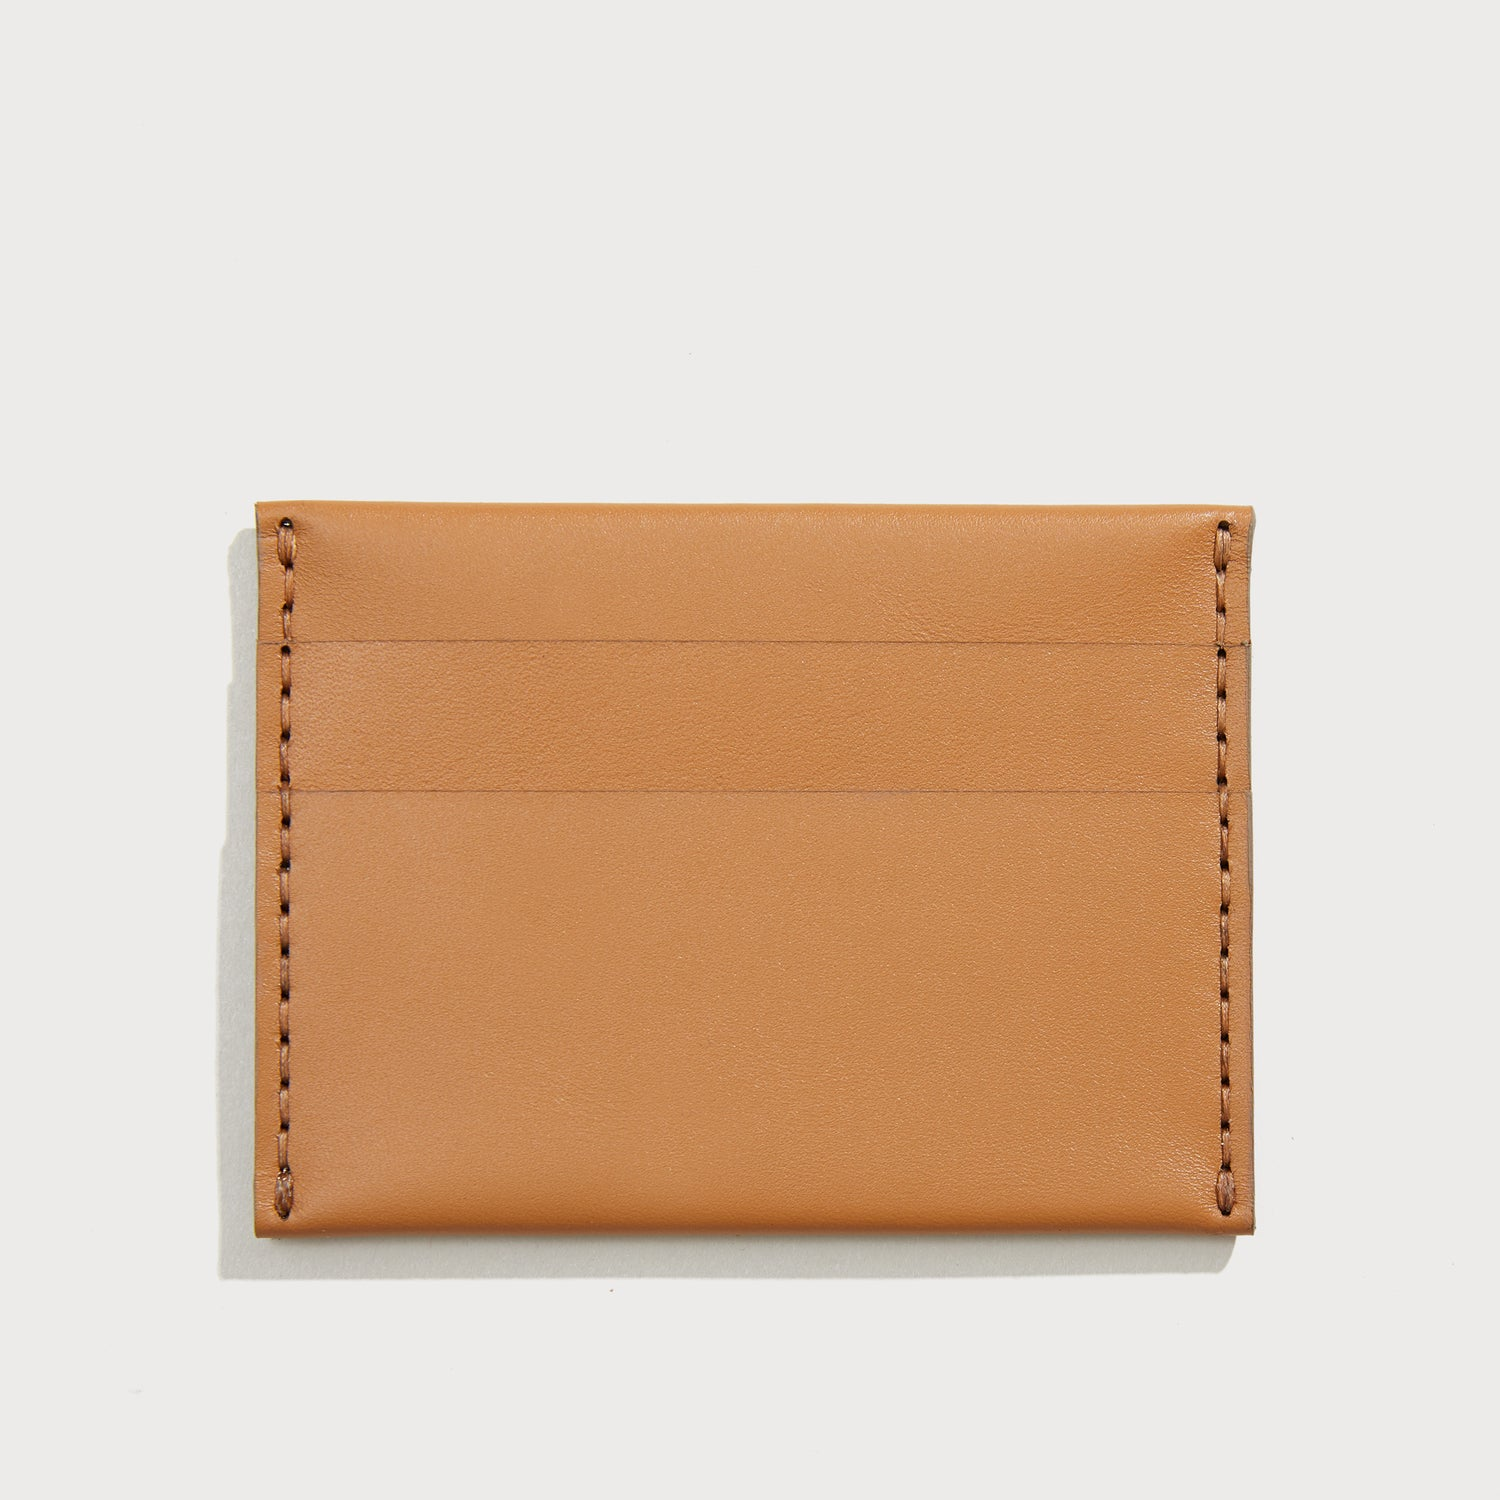 Sold out<br>Portefeuille court Couleur cognac